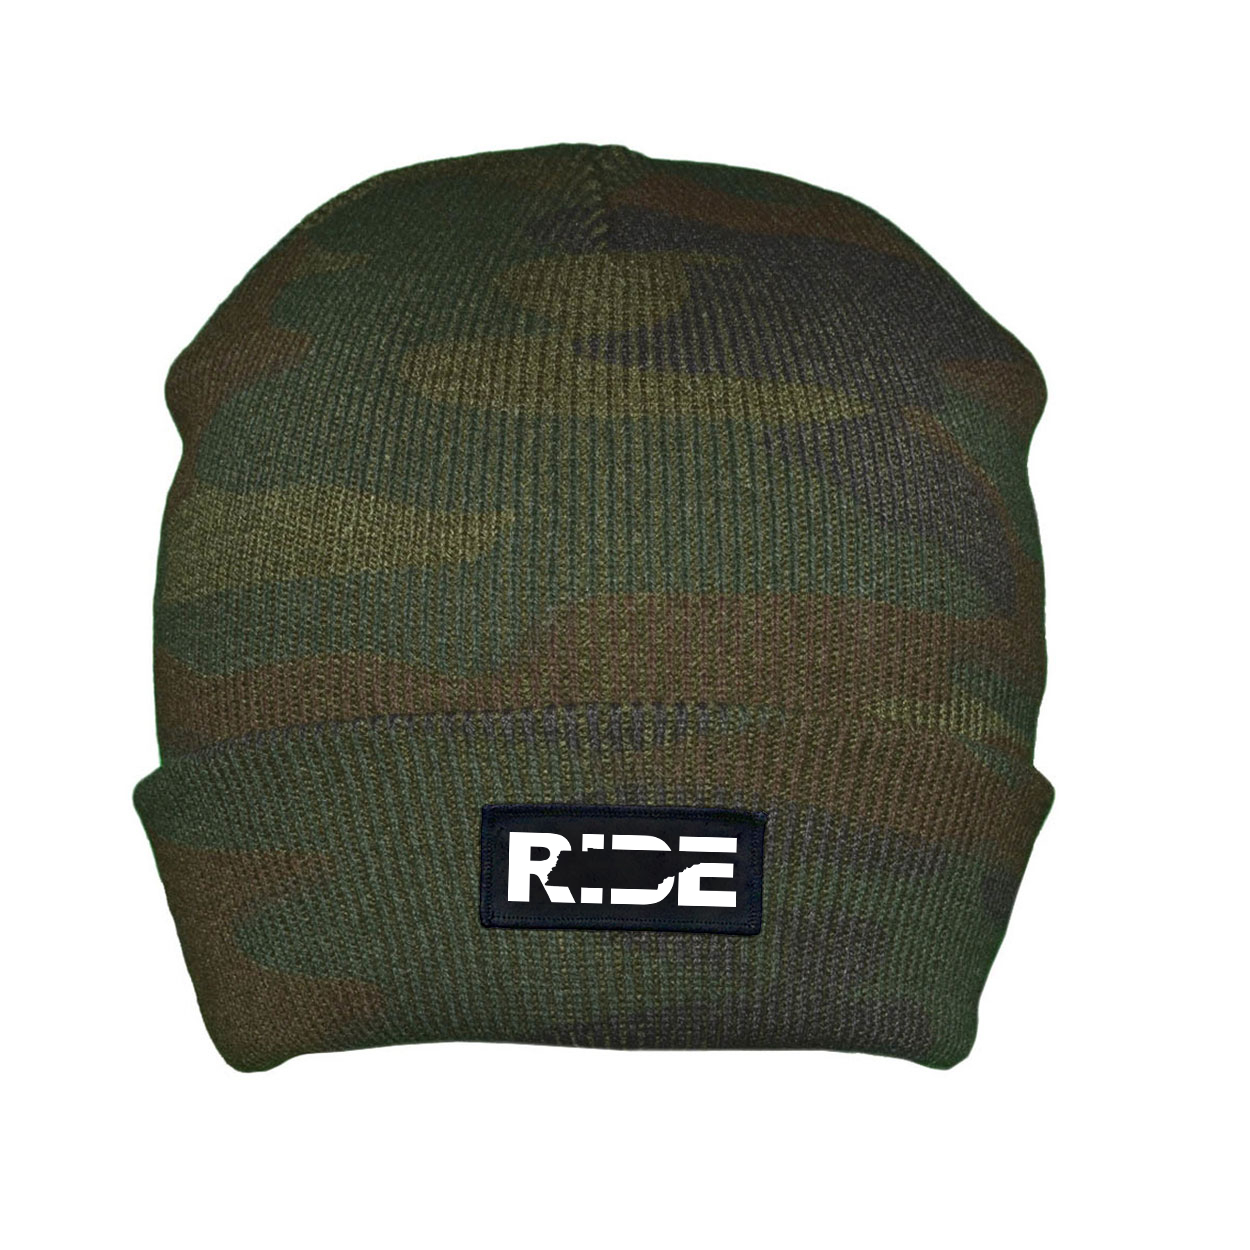 Ride Tennessee Night Out Woven Patch Roll Up Skully Beanie Camo (White Logo)